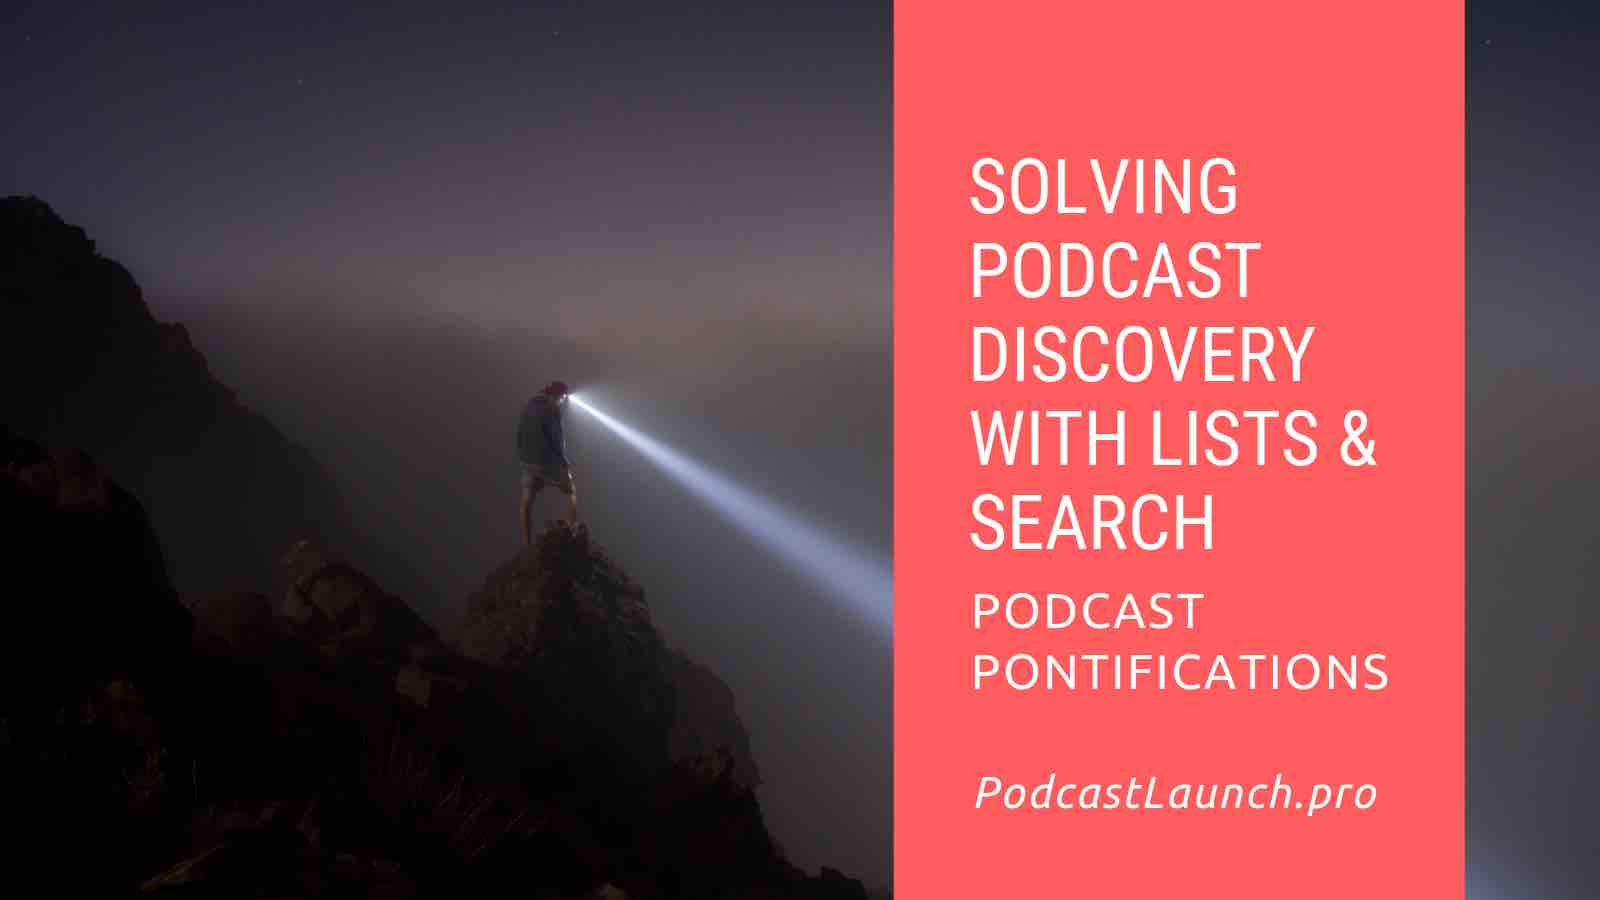 Solving Podcast Discovery With Lists & Search